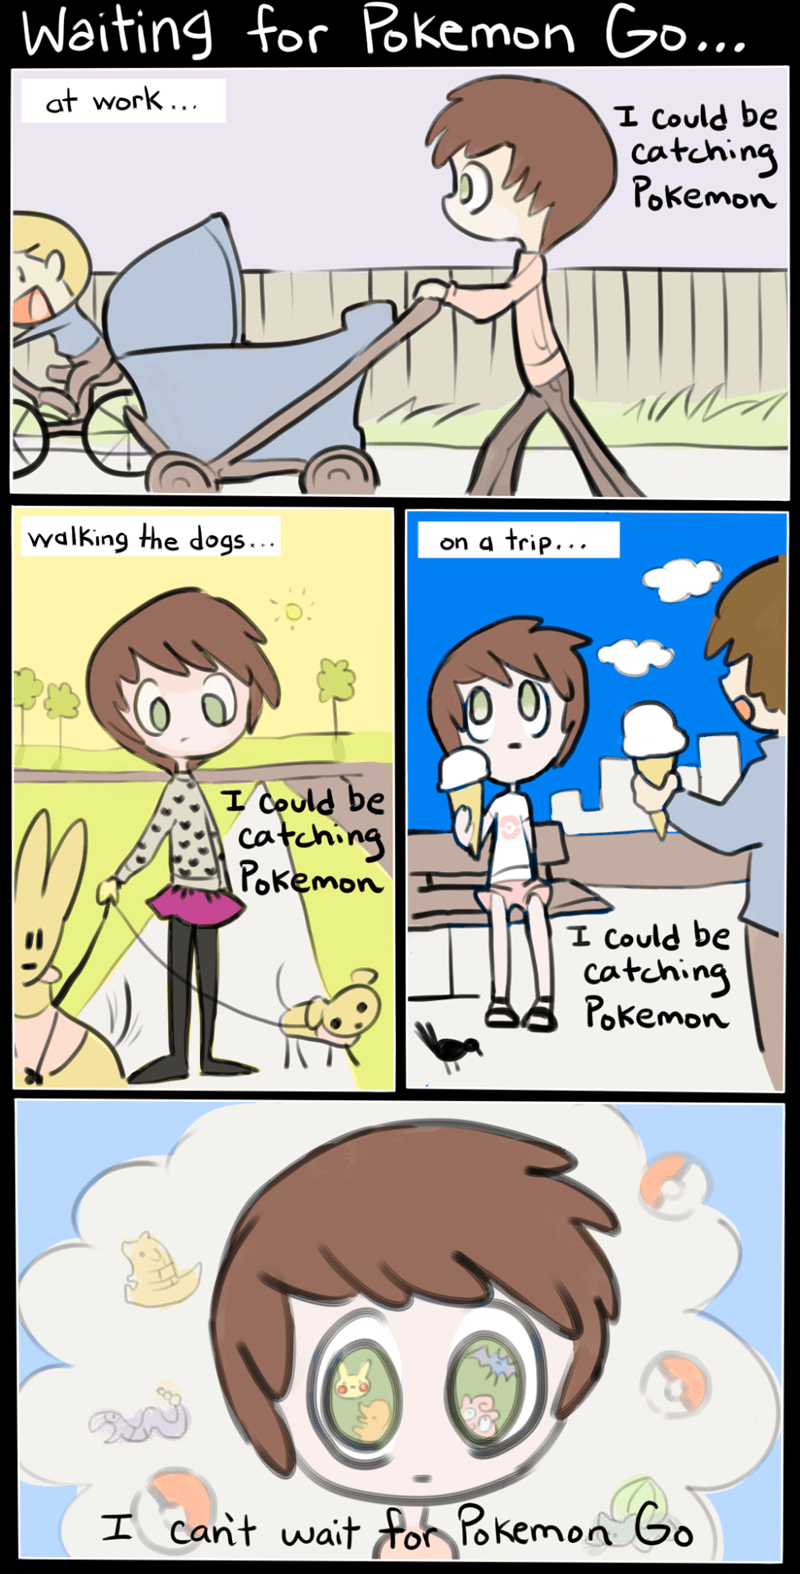 web comic pokemon memes pokemon go i could be catching pokemon | waiting for pokemon go... at work... walking the dogs... on a trip... i can't wait for pokemon go